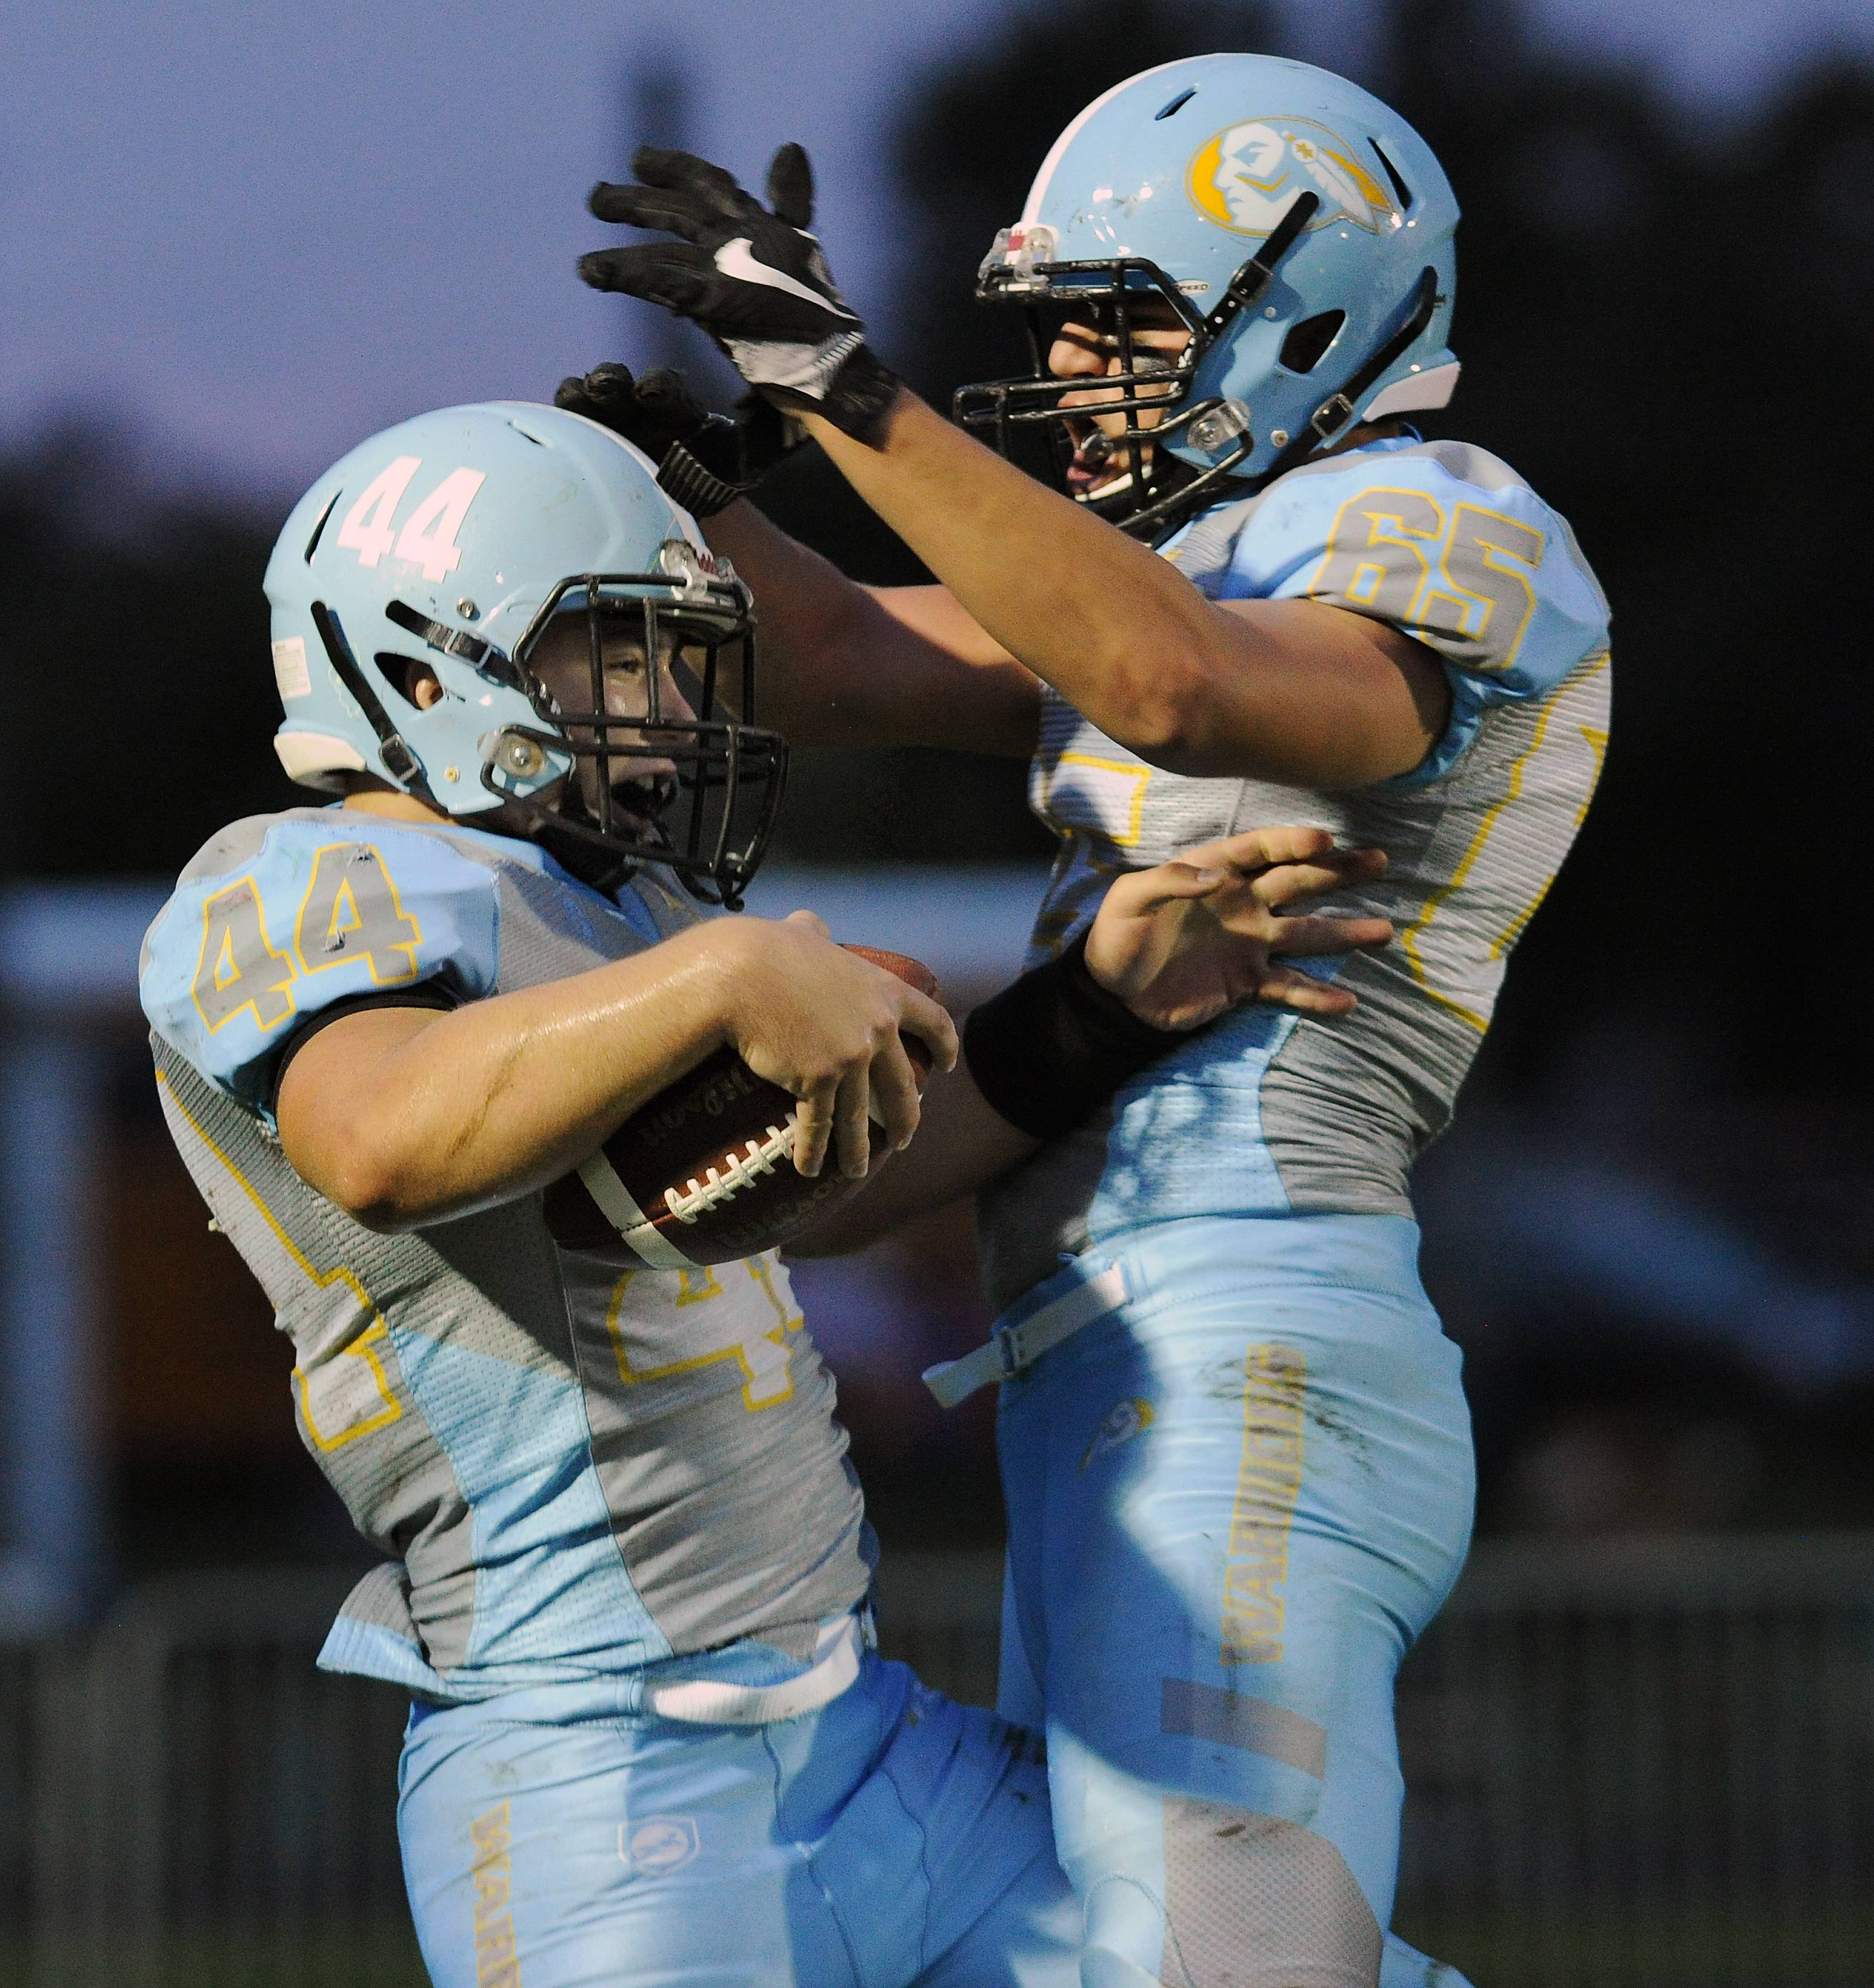 Maine West's Jake Bellizzi (left) celebrates his first touchdown of the night with teammate Costa Paschos in the first quarter against Elk Grove at Maine West on Friday.